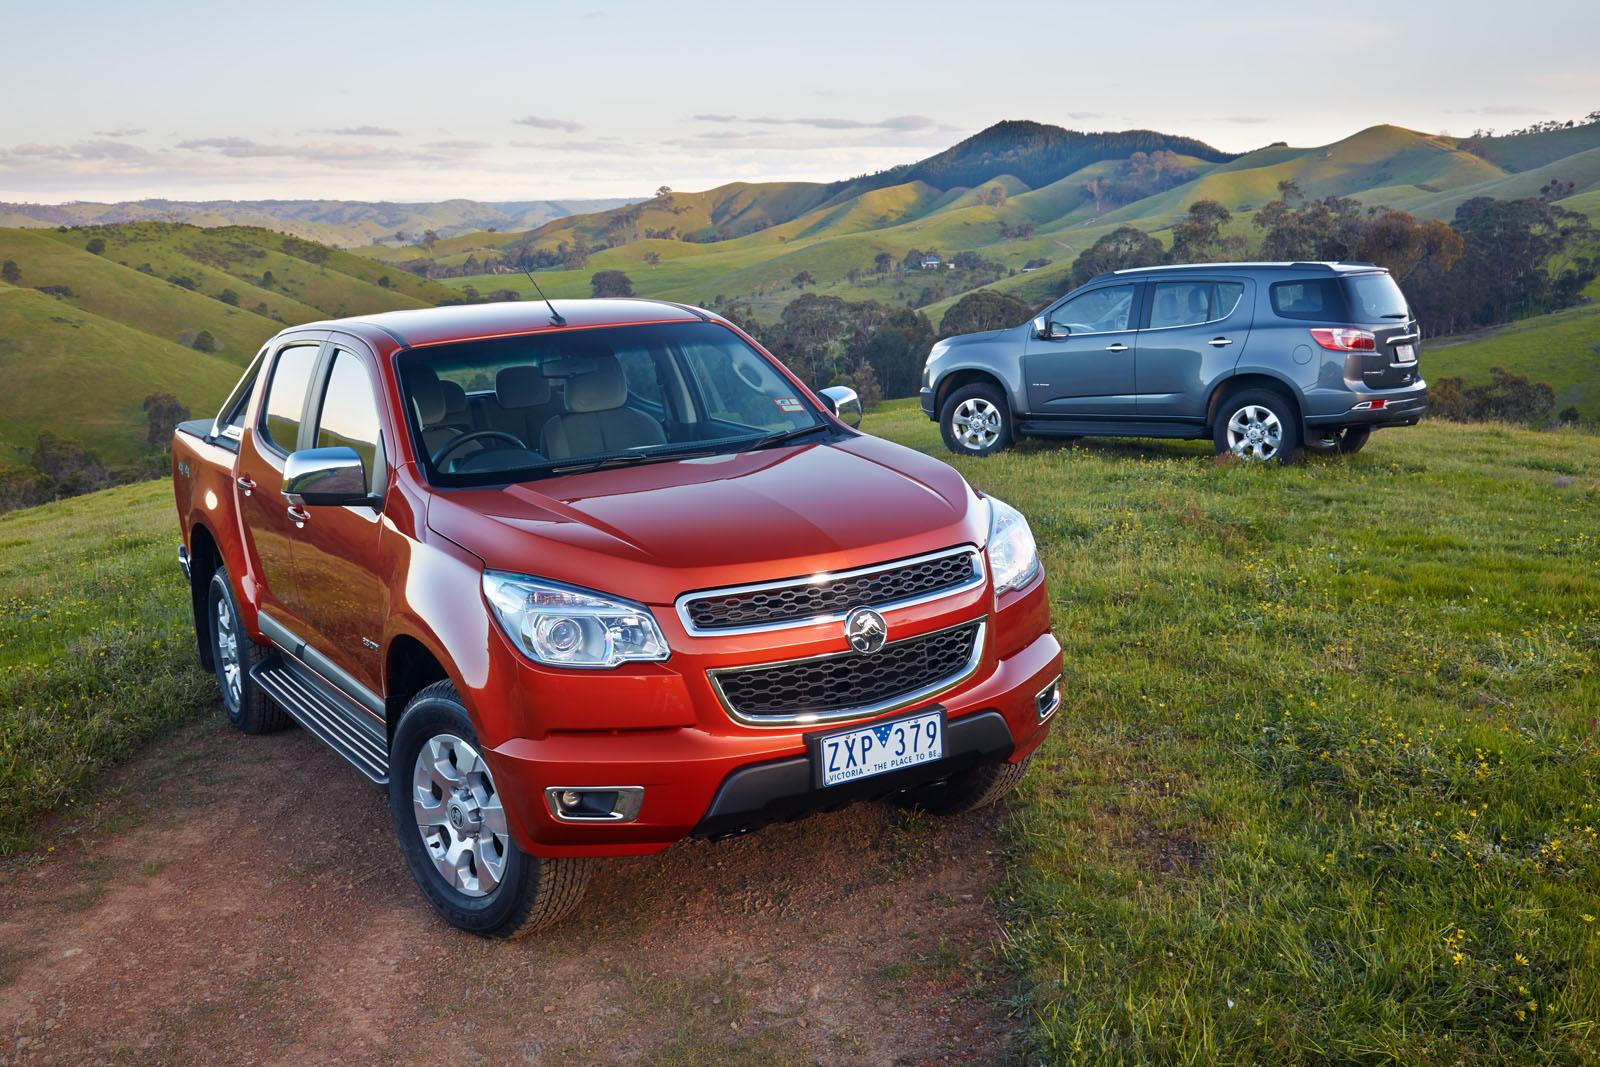 Holden Colorado Colorado Unveiled Photo Galley on Duramax Diesel Transmission